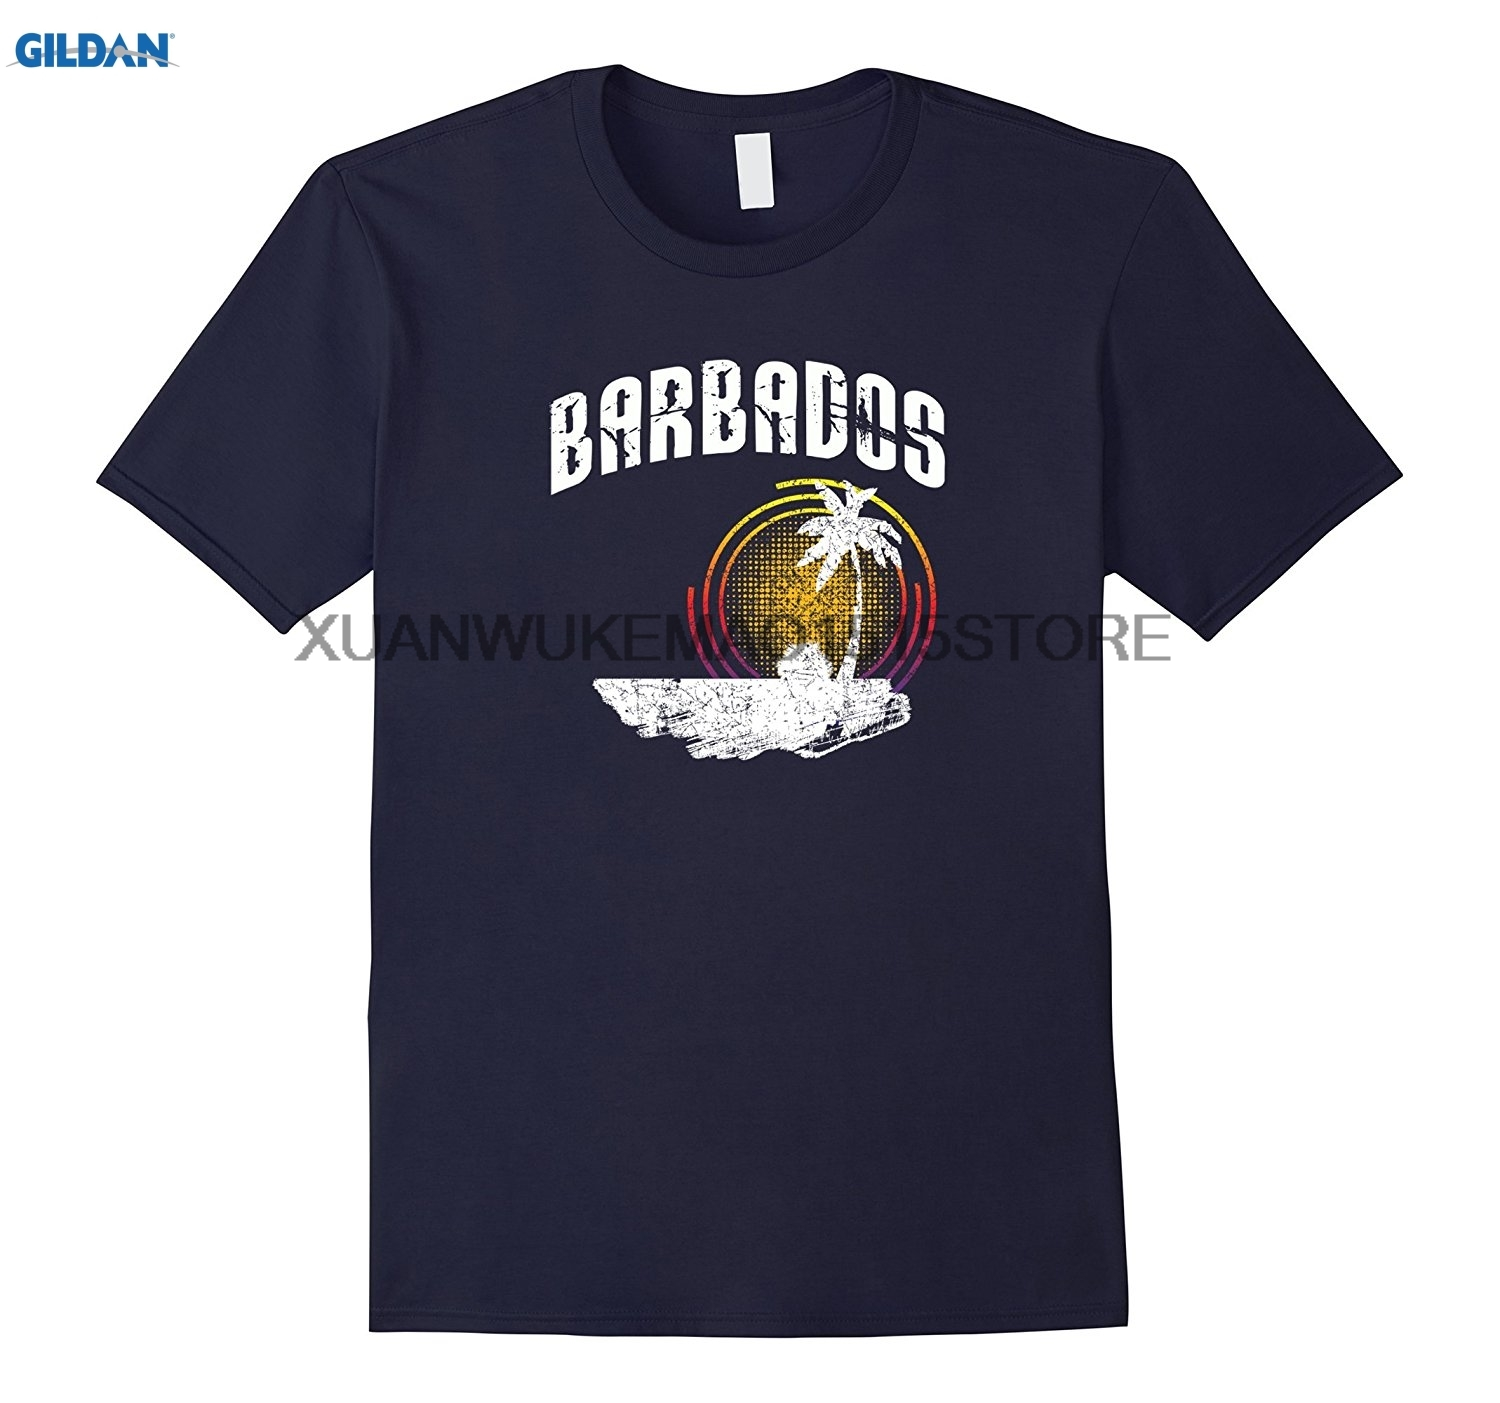 GILDAN 100% cotton O-neck printed T-shirt Barbados T-shirt Bridgetown Caribbean Island Shirt